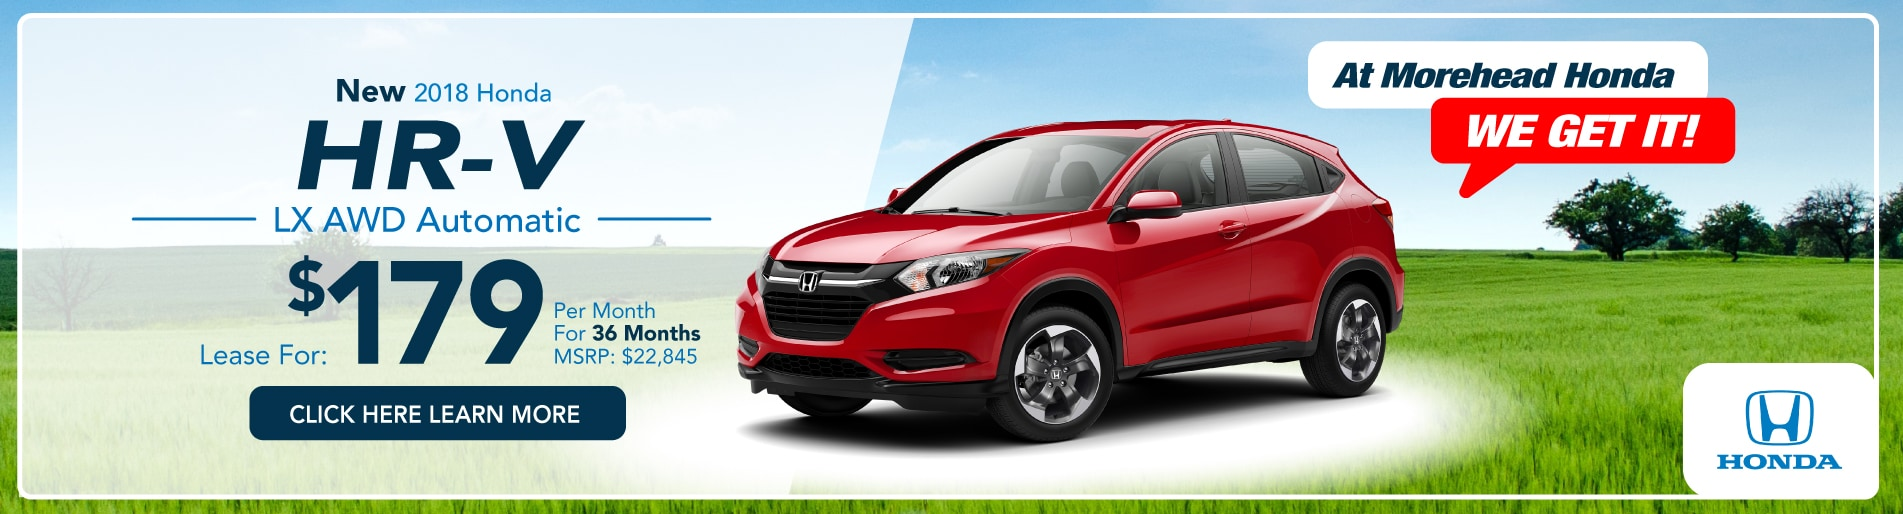 New 2018 Honda HR V LX SUV Auto Lease For $179/mo For 36 Months. Stk:  180544M. Auto, 4cyl, 5dr, AWD, P/s/b, P/disc, Abs, A/c. $179 FIRST MONTH +  $1,995 DWN ...